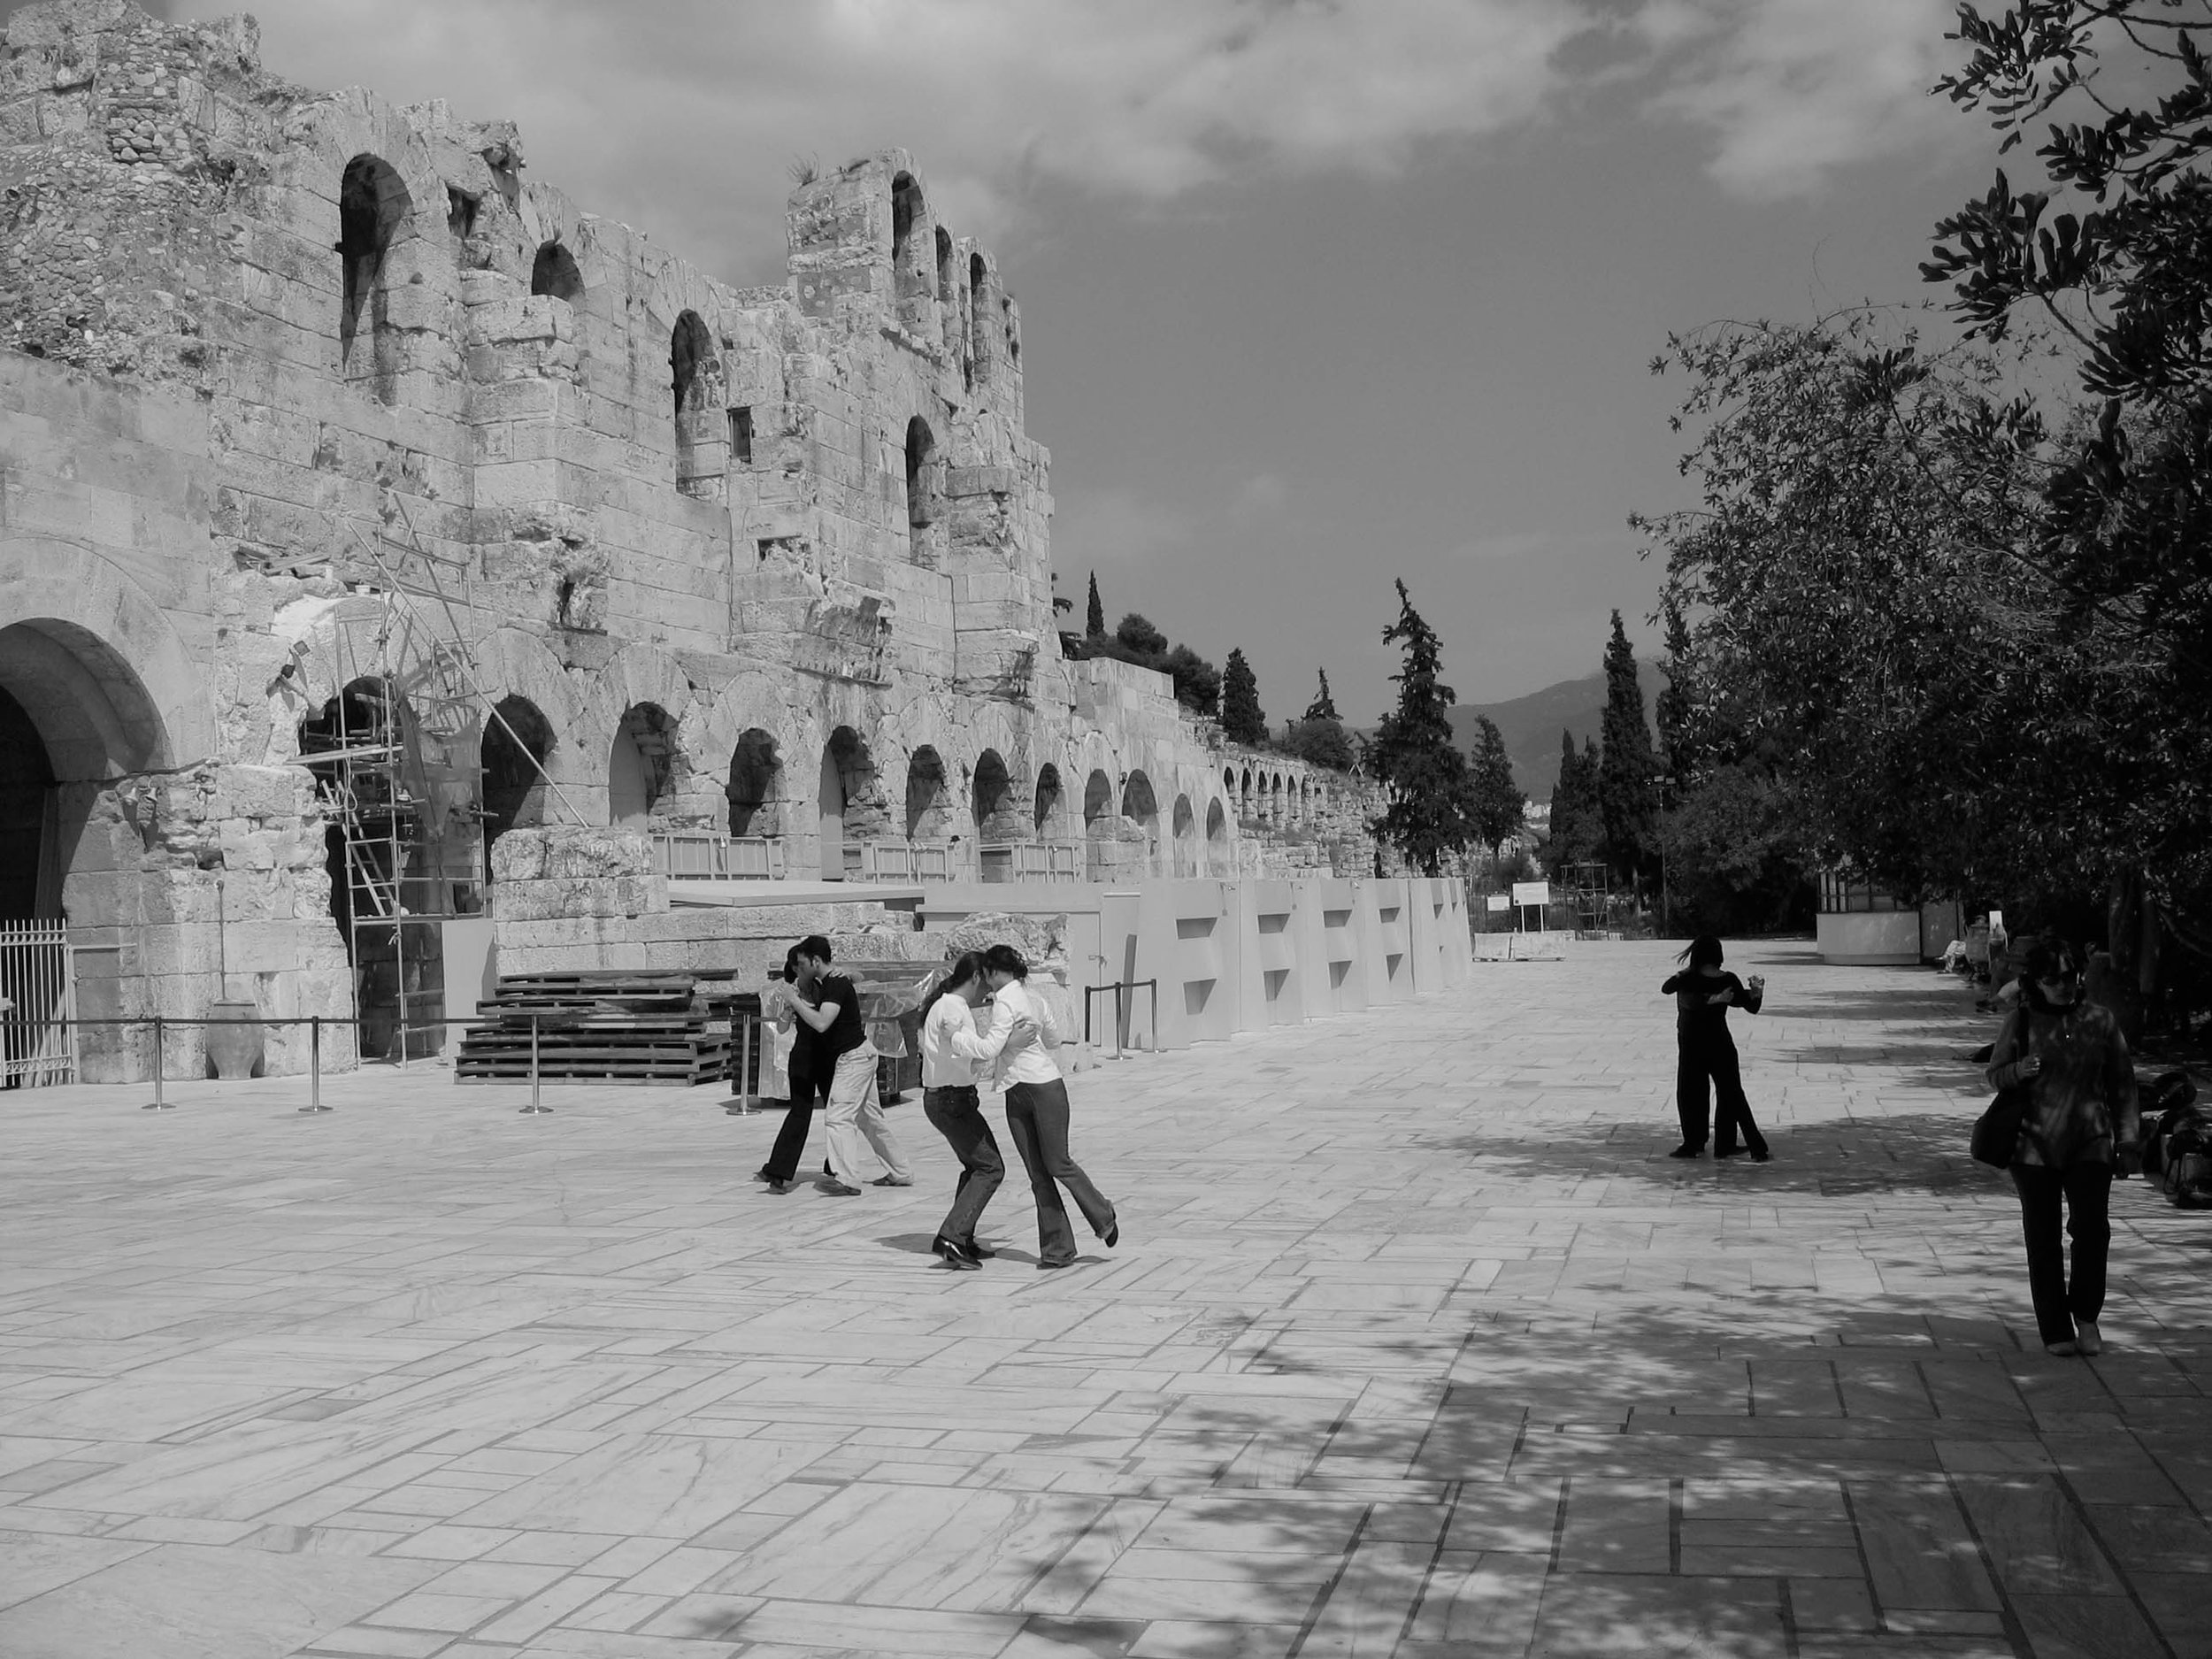 Waltzing in Athens